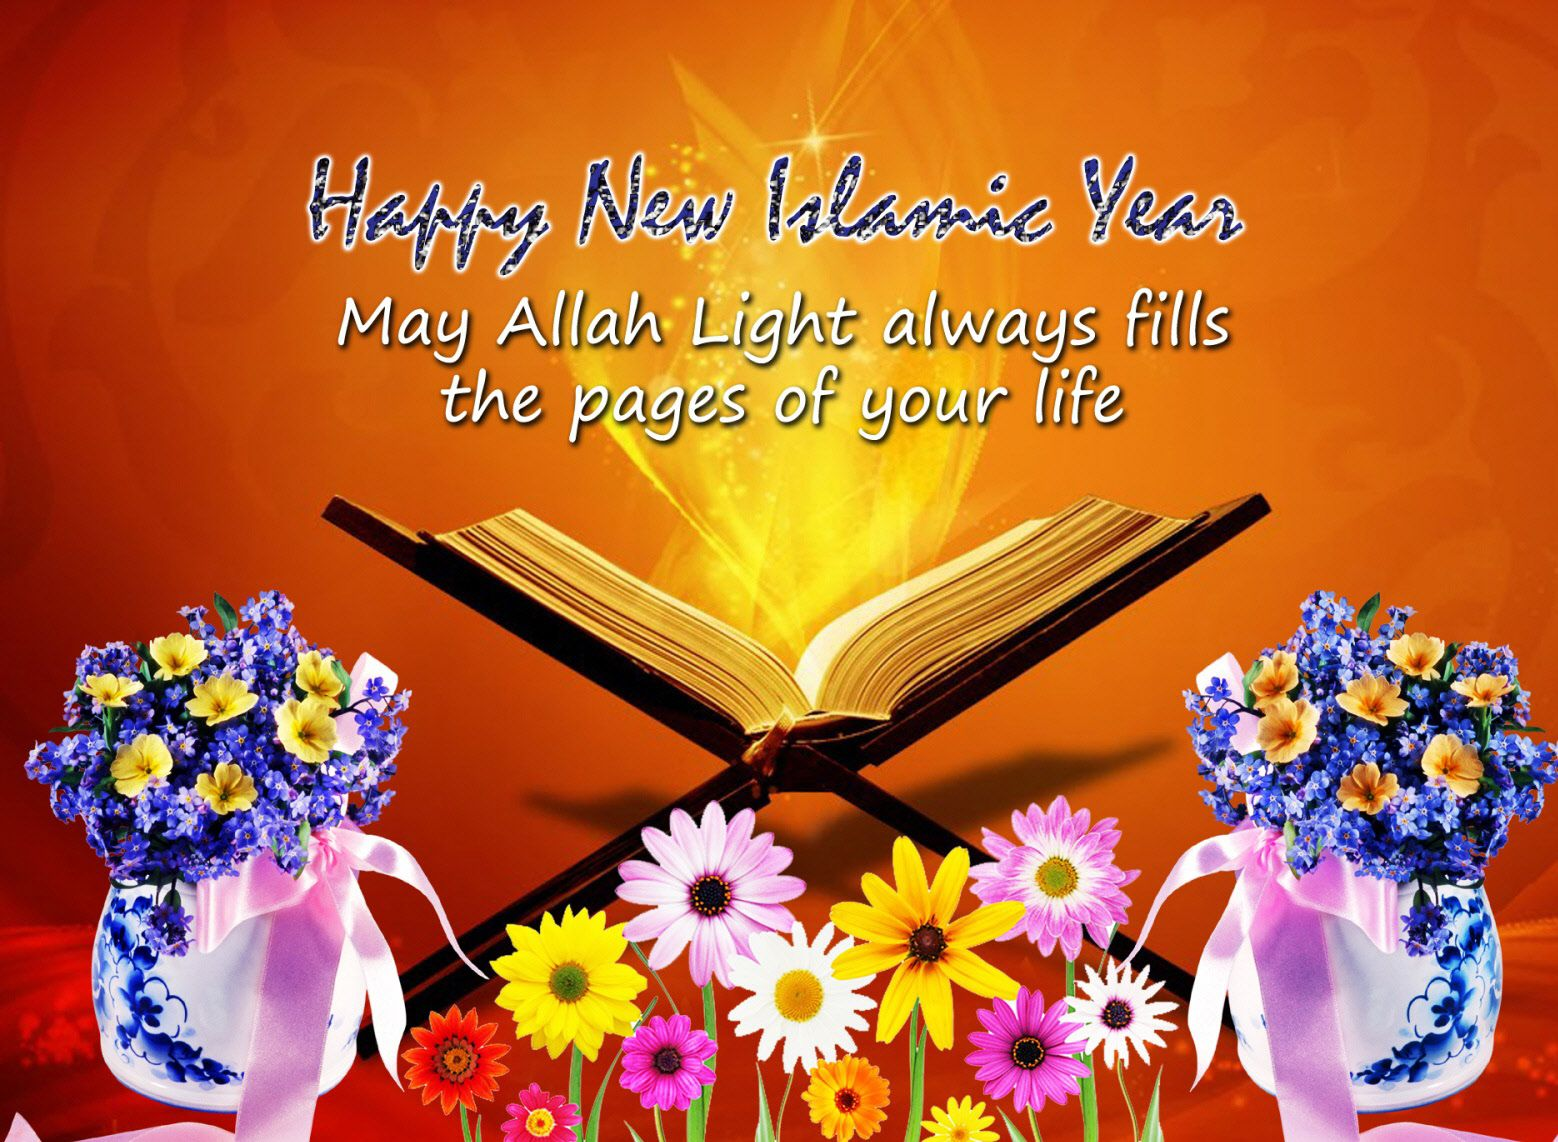 Islamic happy new year islamic new year adan cade pinterest islamic happy new year islamic new year m4hsunfo